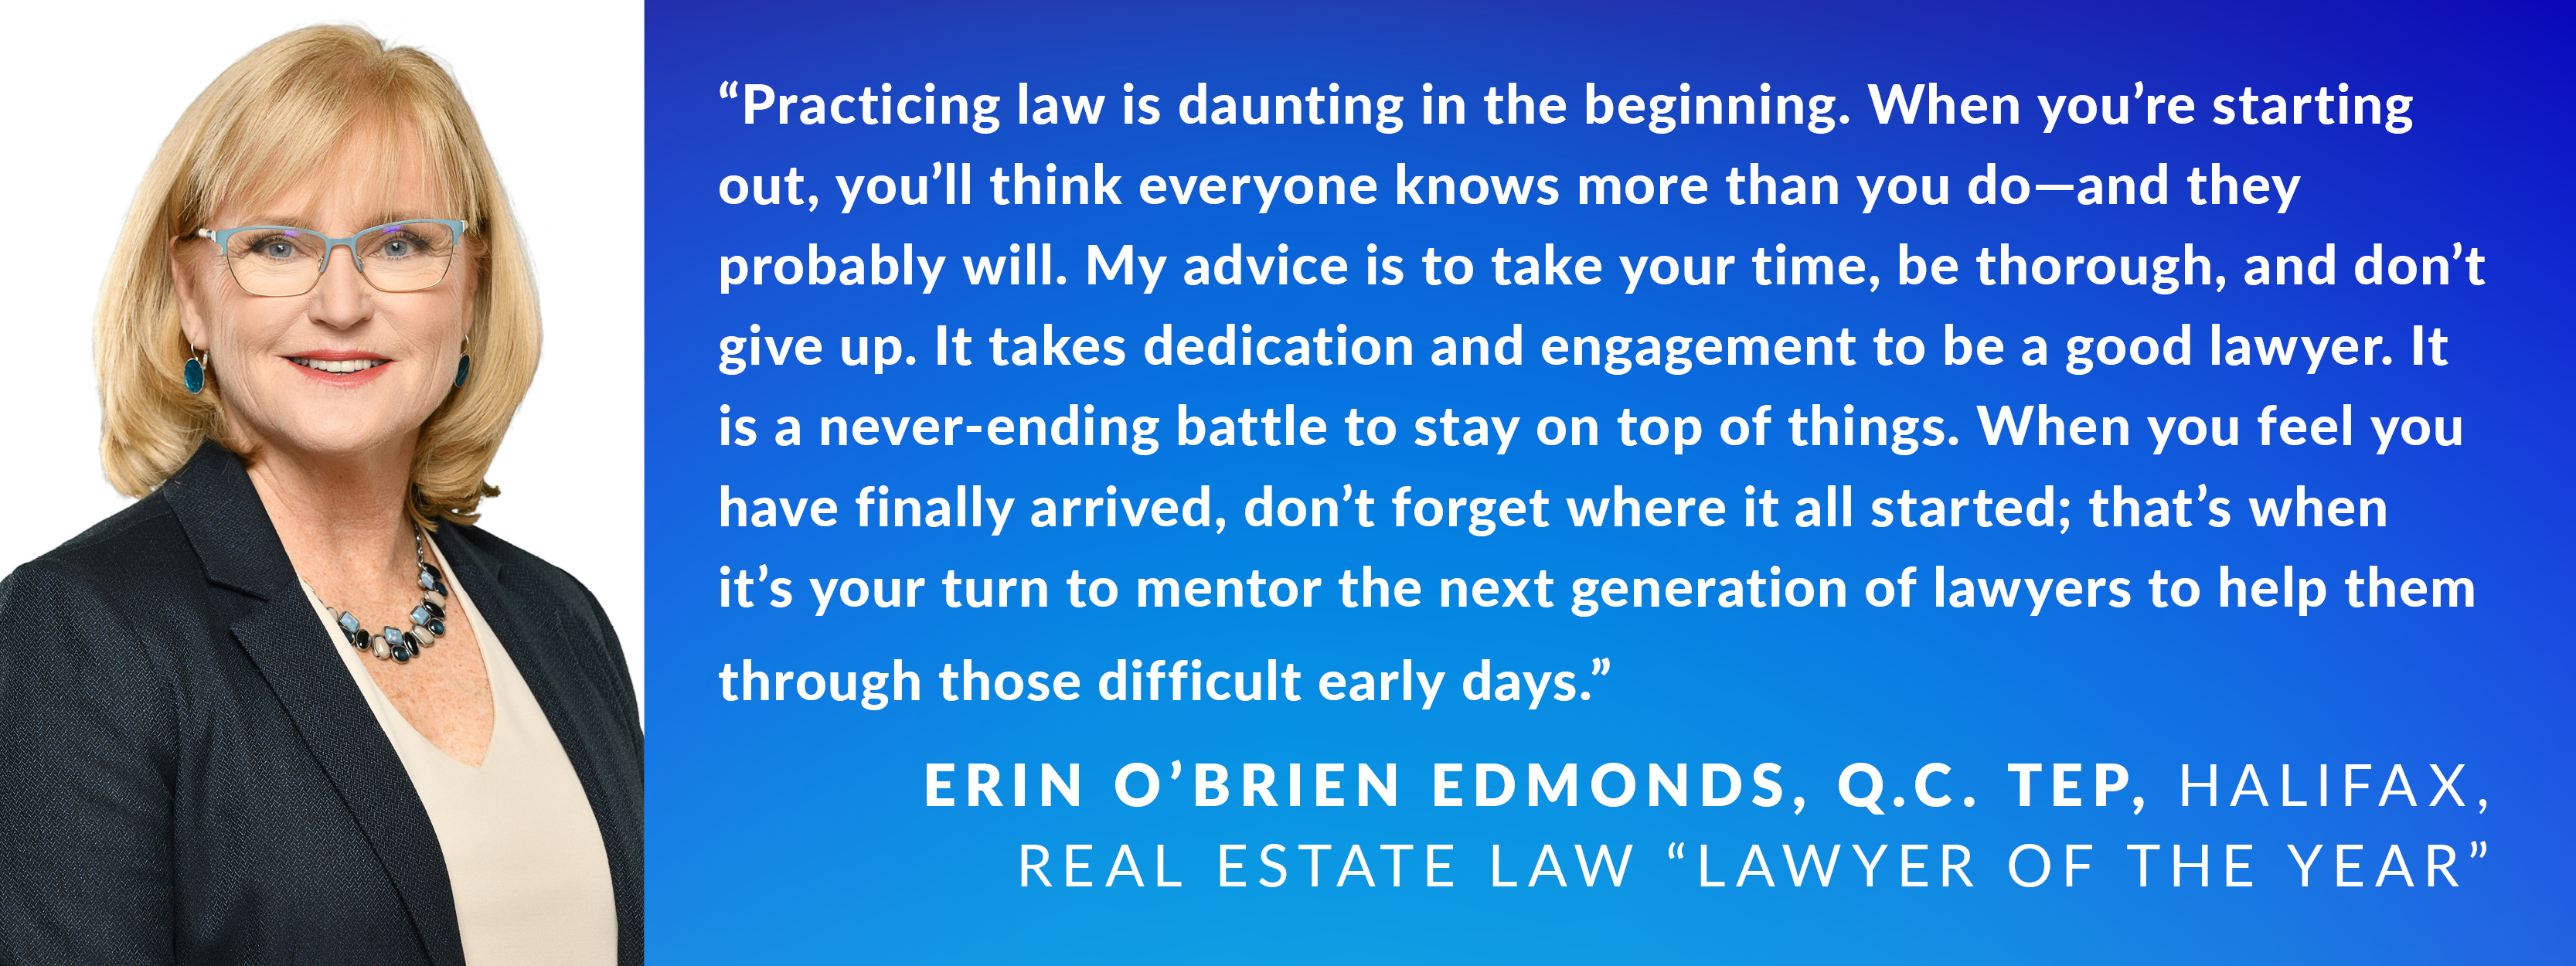 Erin O'Brien Edmonds, Q.C. TEP, Halifax, Real Estate Law Lawyer of the Year